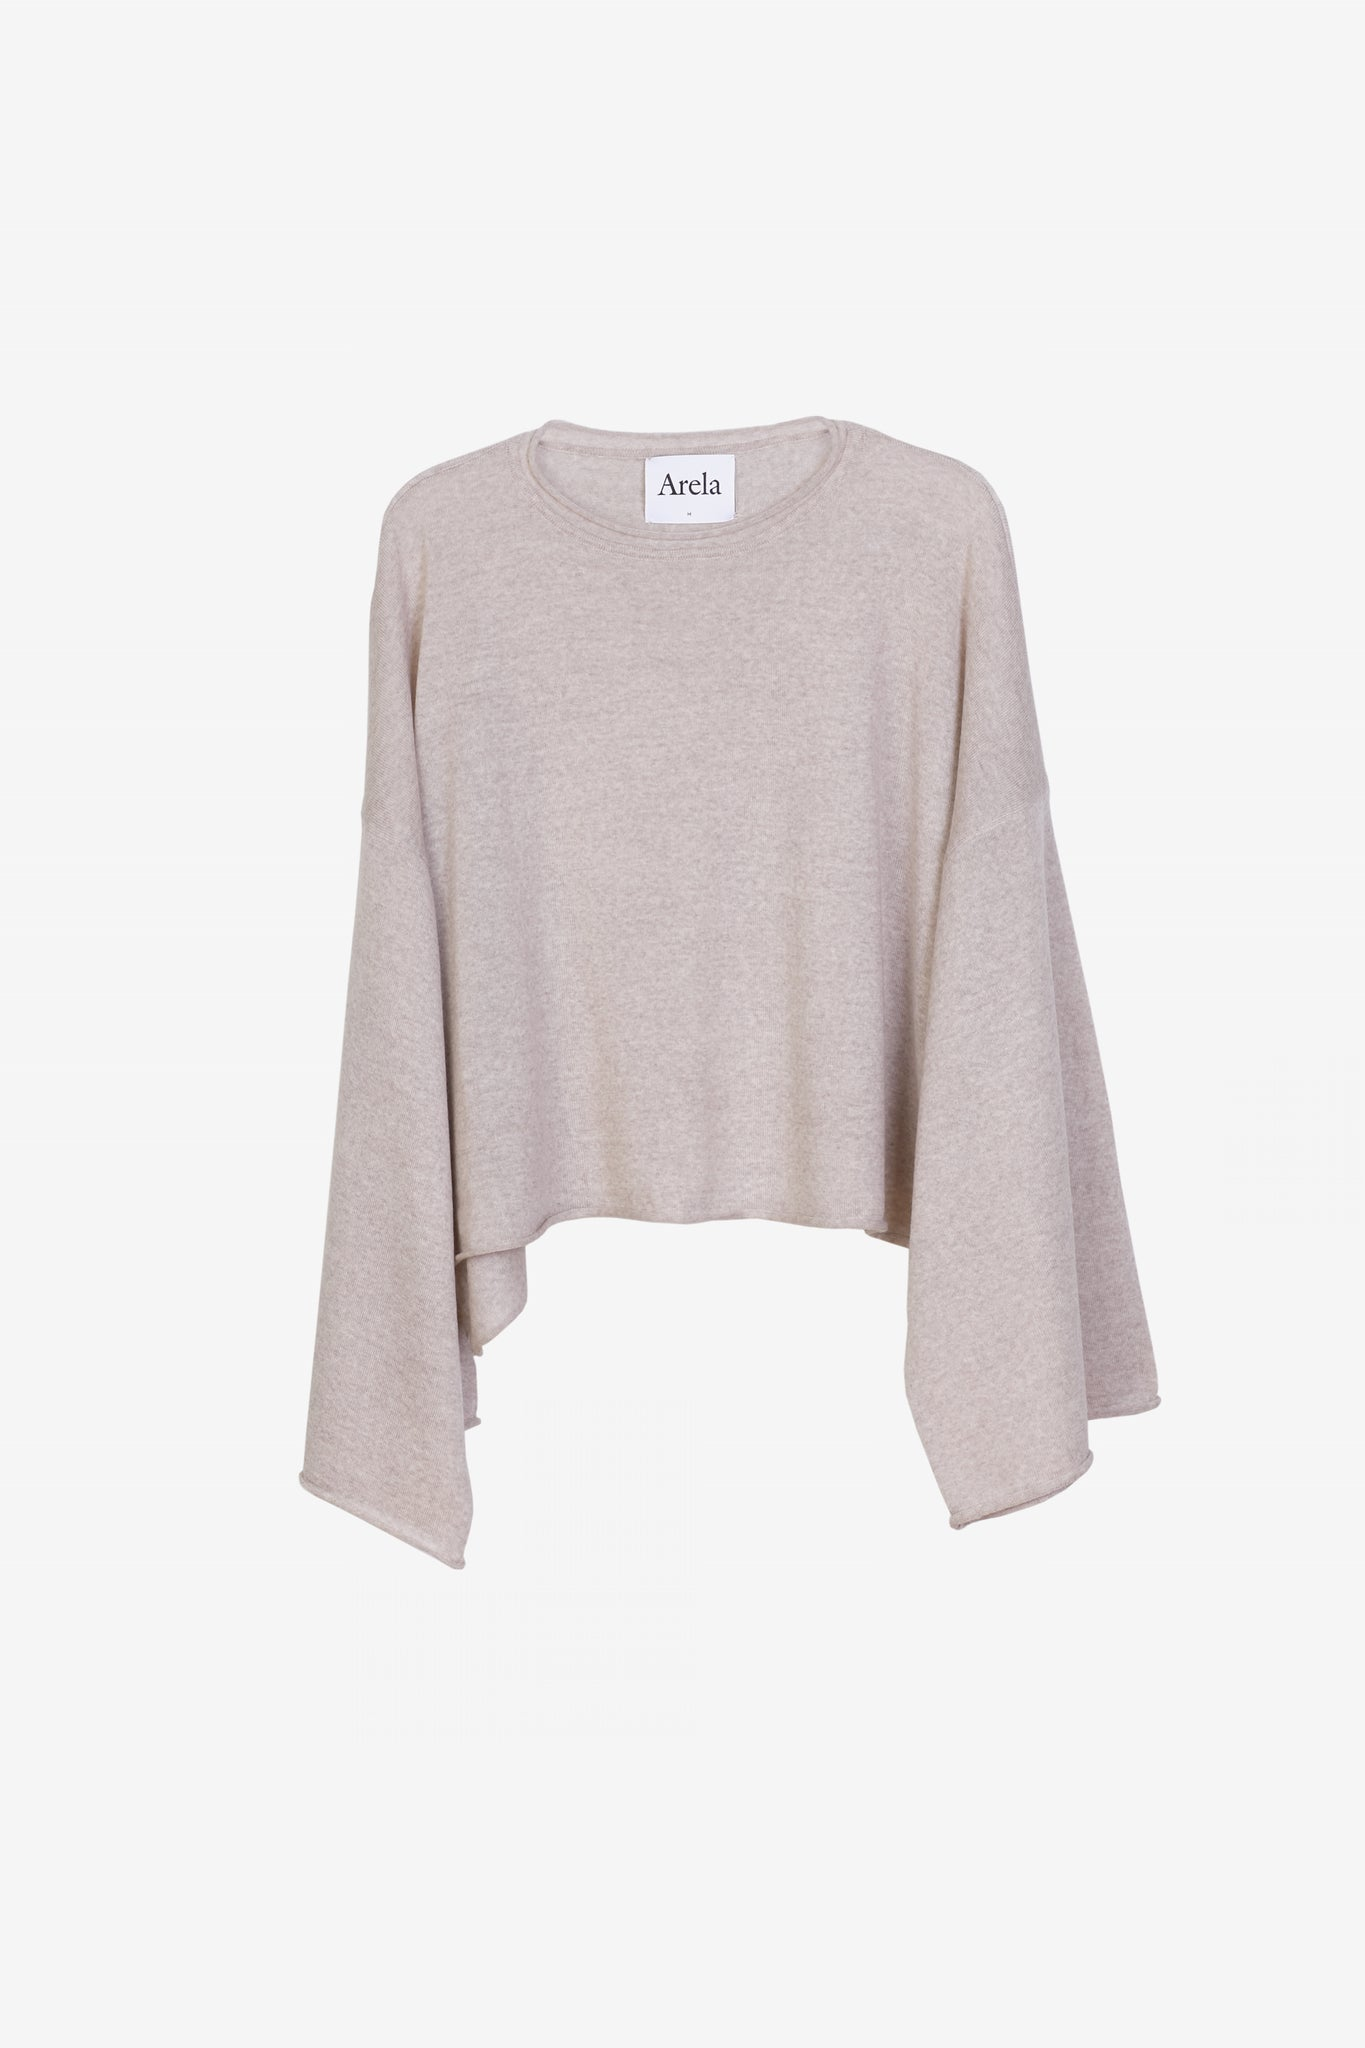 Signe sweater in beige